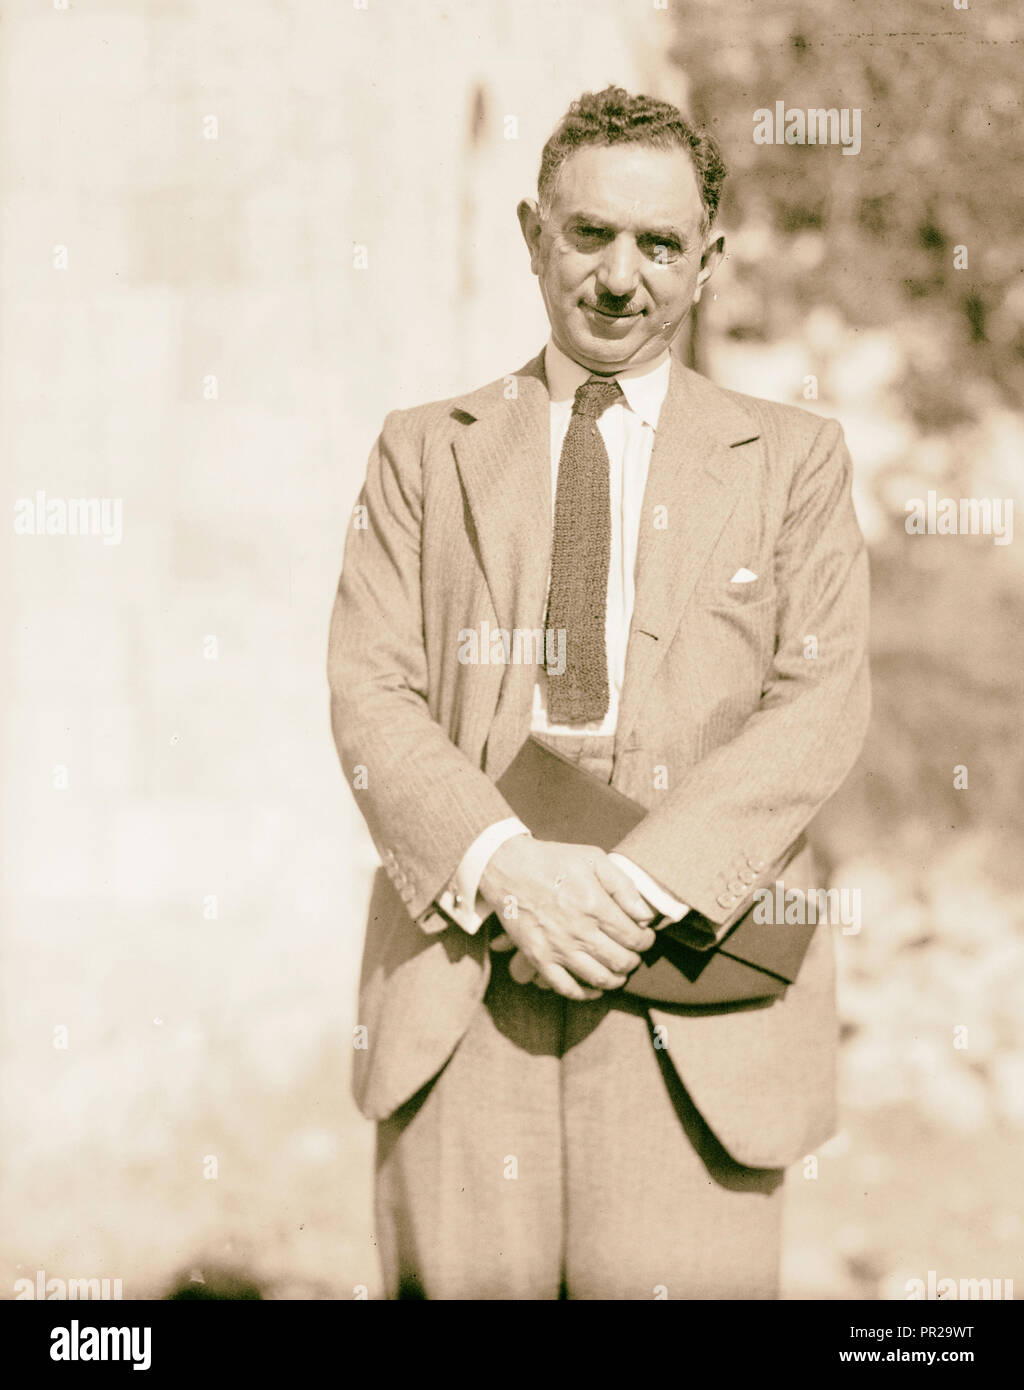 Palestine disturbances 1936. Nuri Pasha Es-Said, Foreign Minister of Iraq, arbitrator for the Palestine cause. 1936 Stock Photo